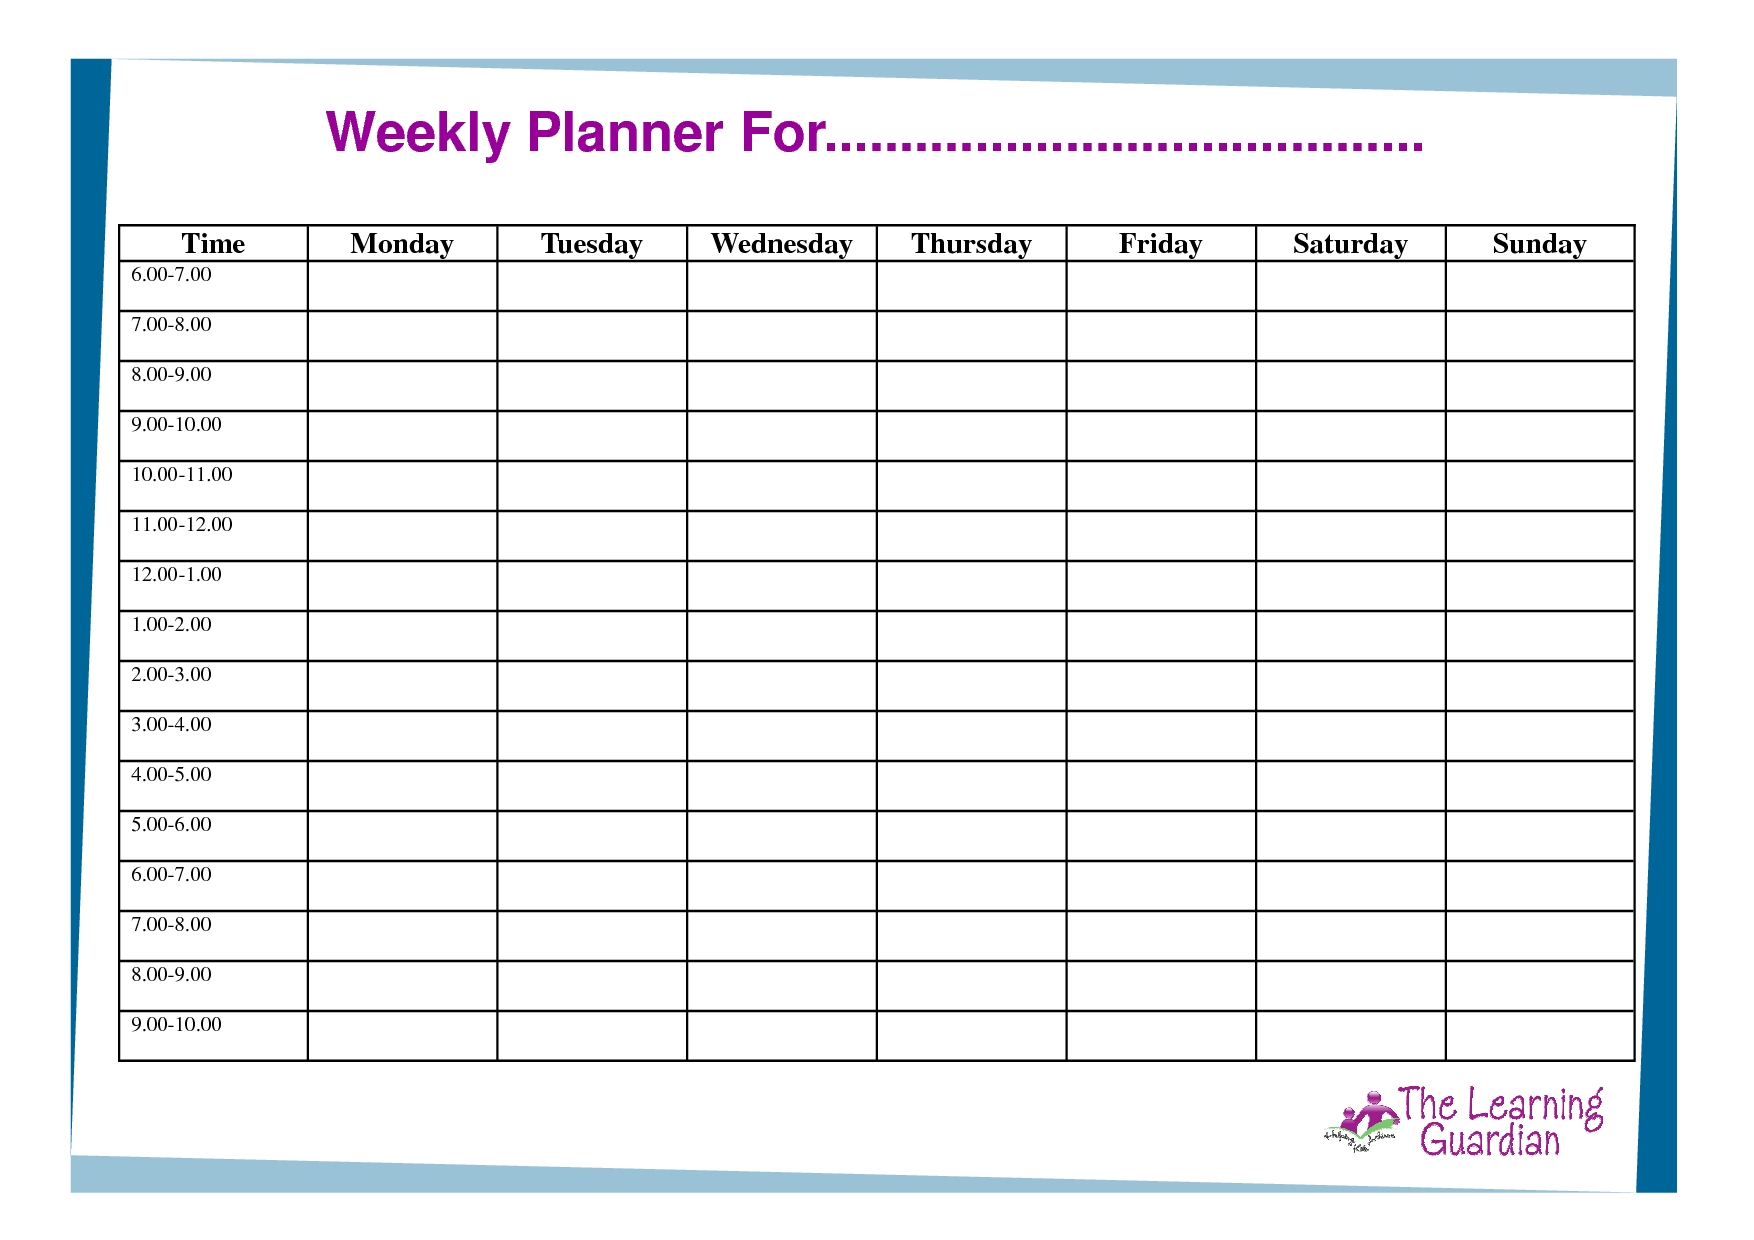 Free Printable Weekly Calendar Templates | Weekly Planner For Time  Pweakley Planner Mon To Sunday